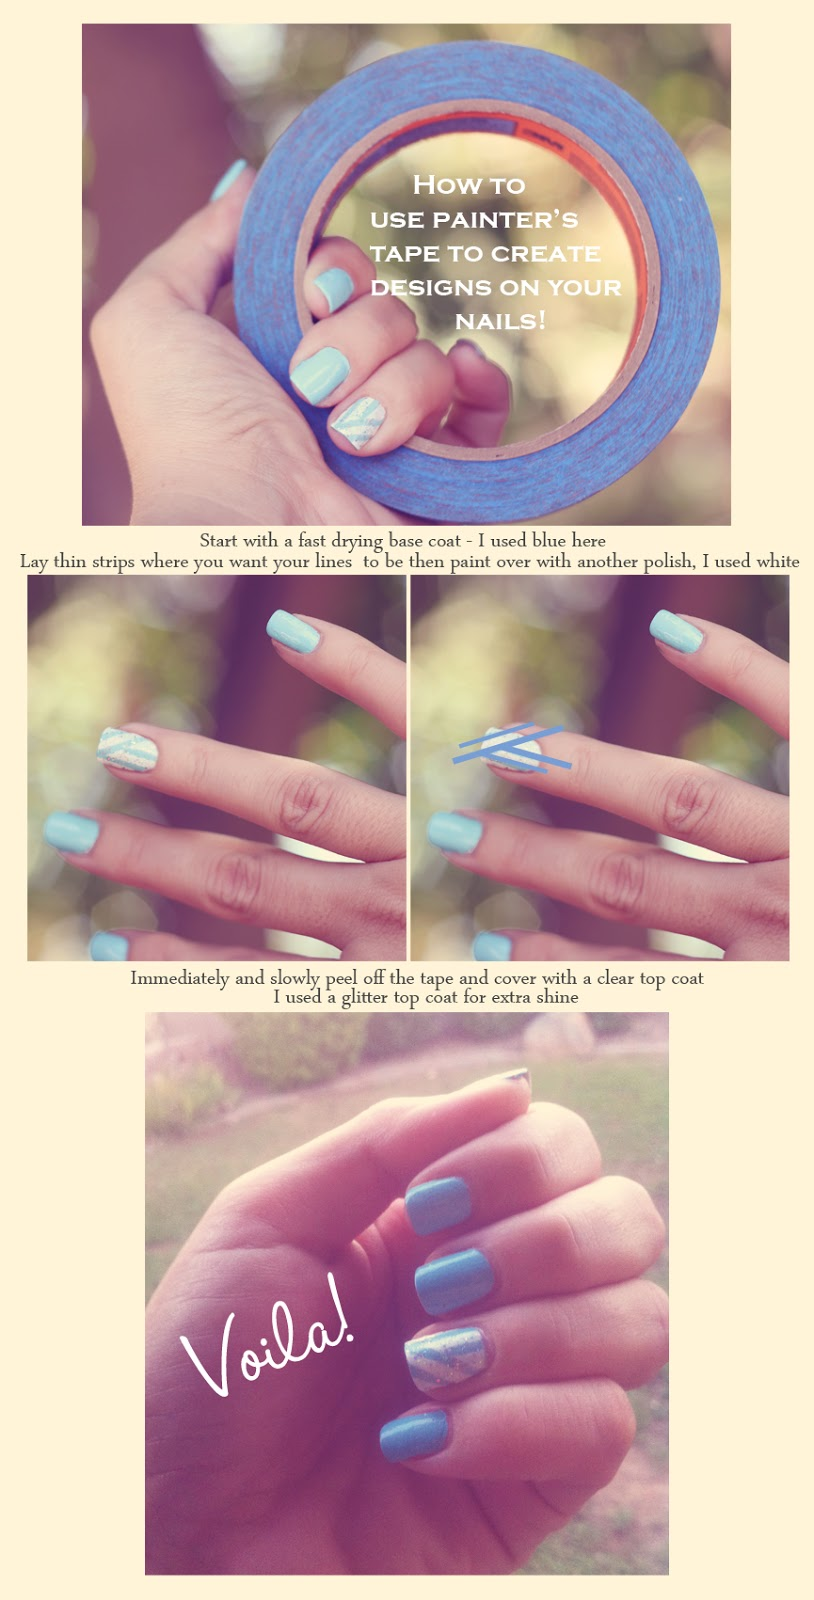 jill and the little crown: How To Use Tape To Create Designs On Your Nails